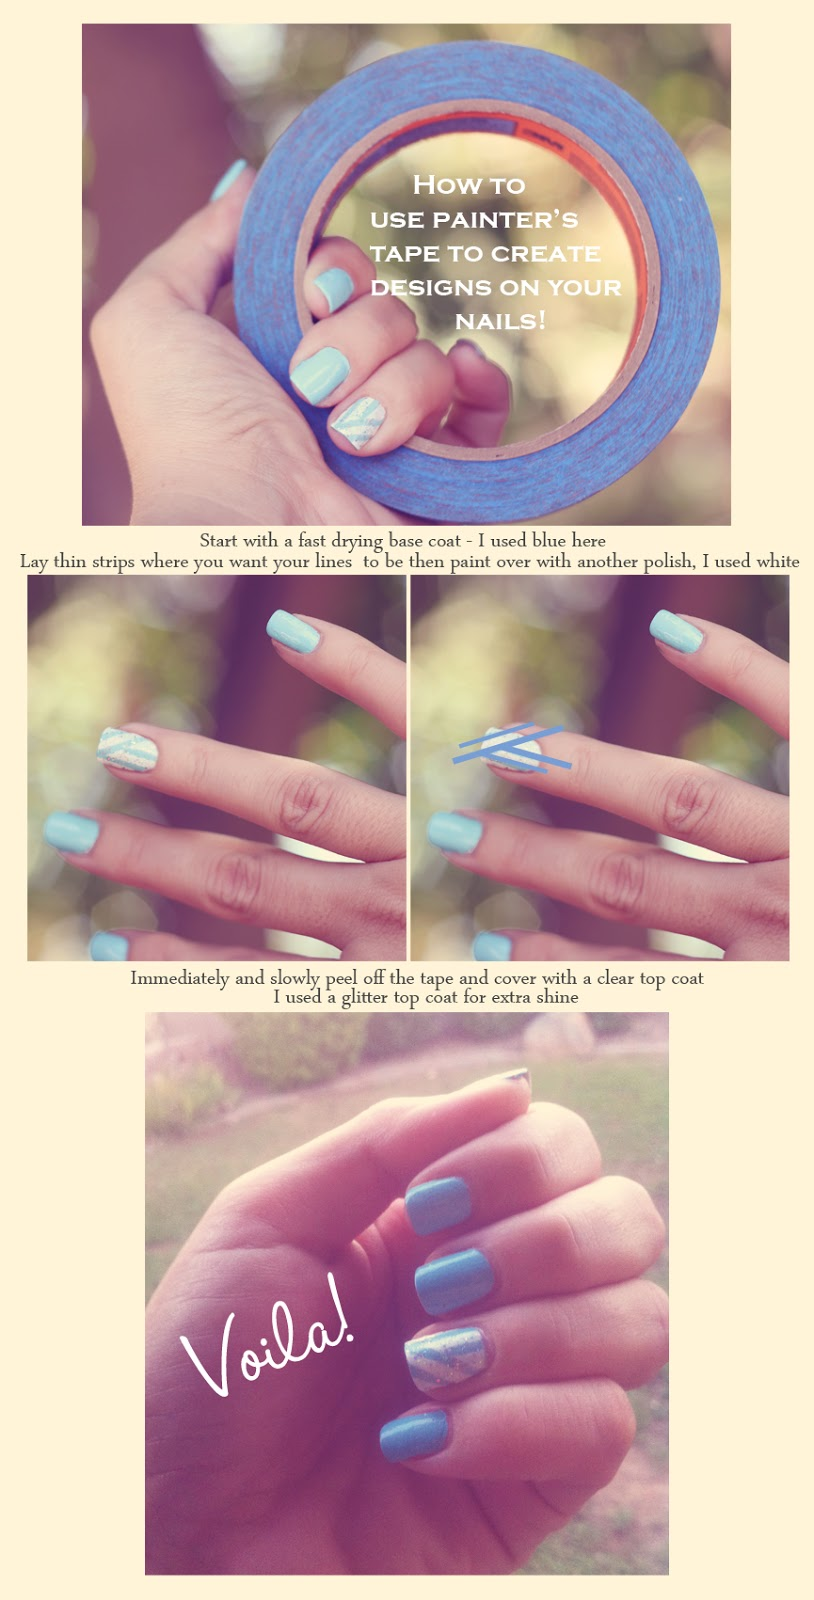 jill and the little crown: How To Use Tape To Create Designs On Your Nails